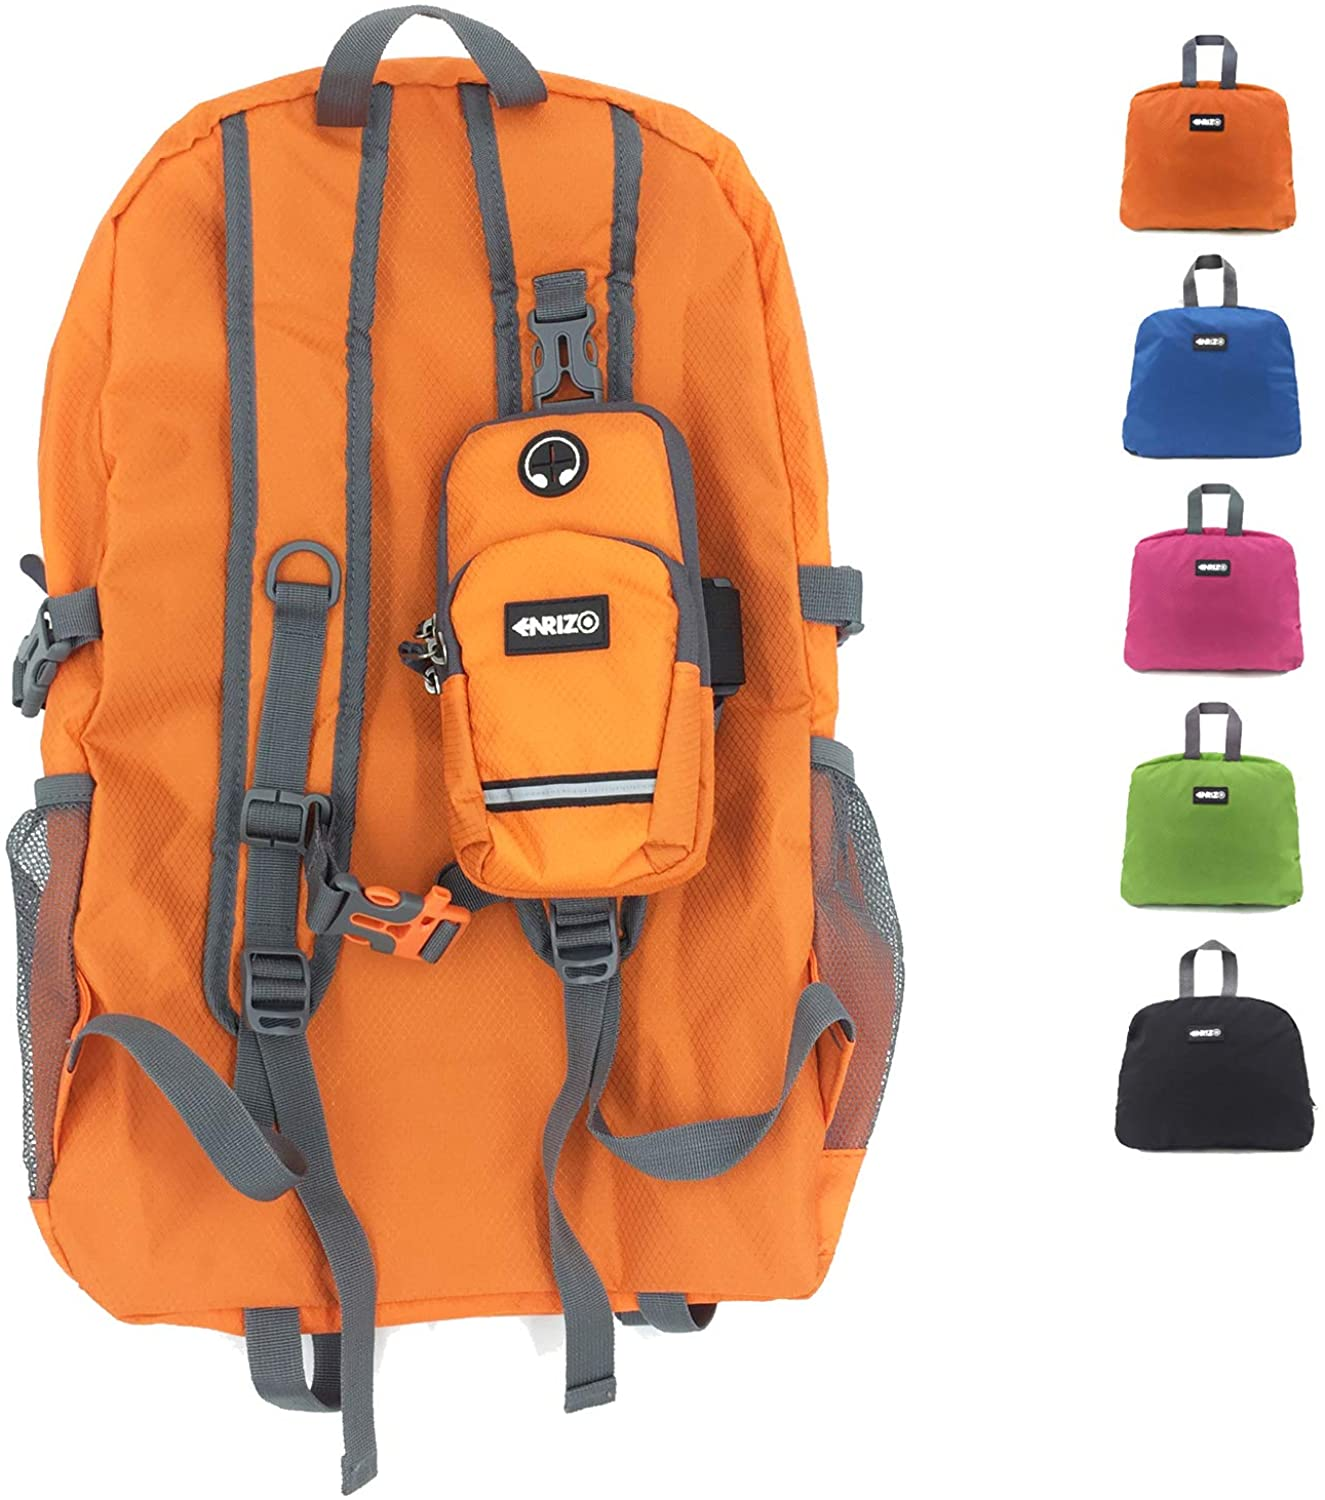 Enrizo 35L Large Capacity Packable Hiking Travel Foldablem Outdoor Daypack Lightweight Backpack with Durable Water Resistant